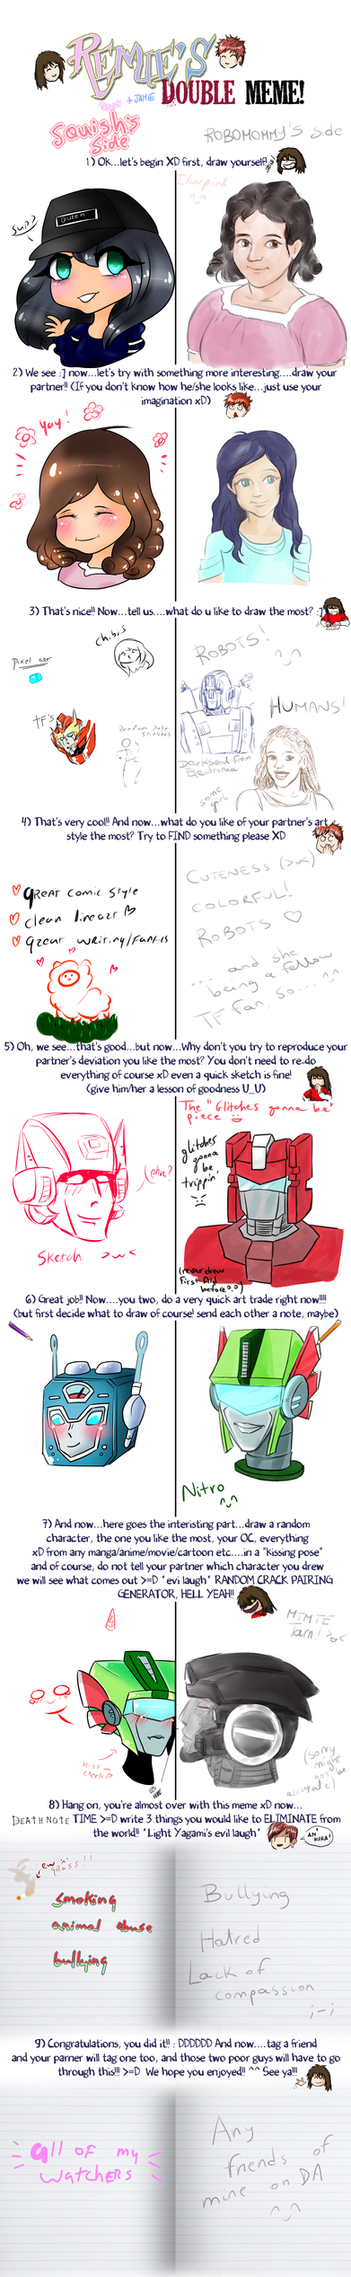 Double Meme with SquishyAutobot by RoboMommy